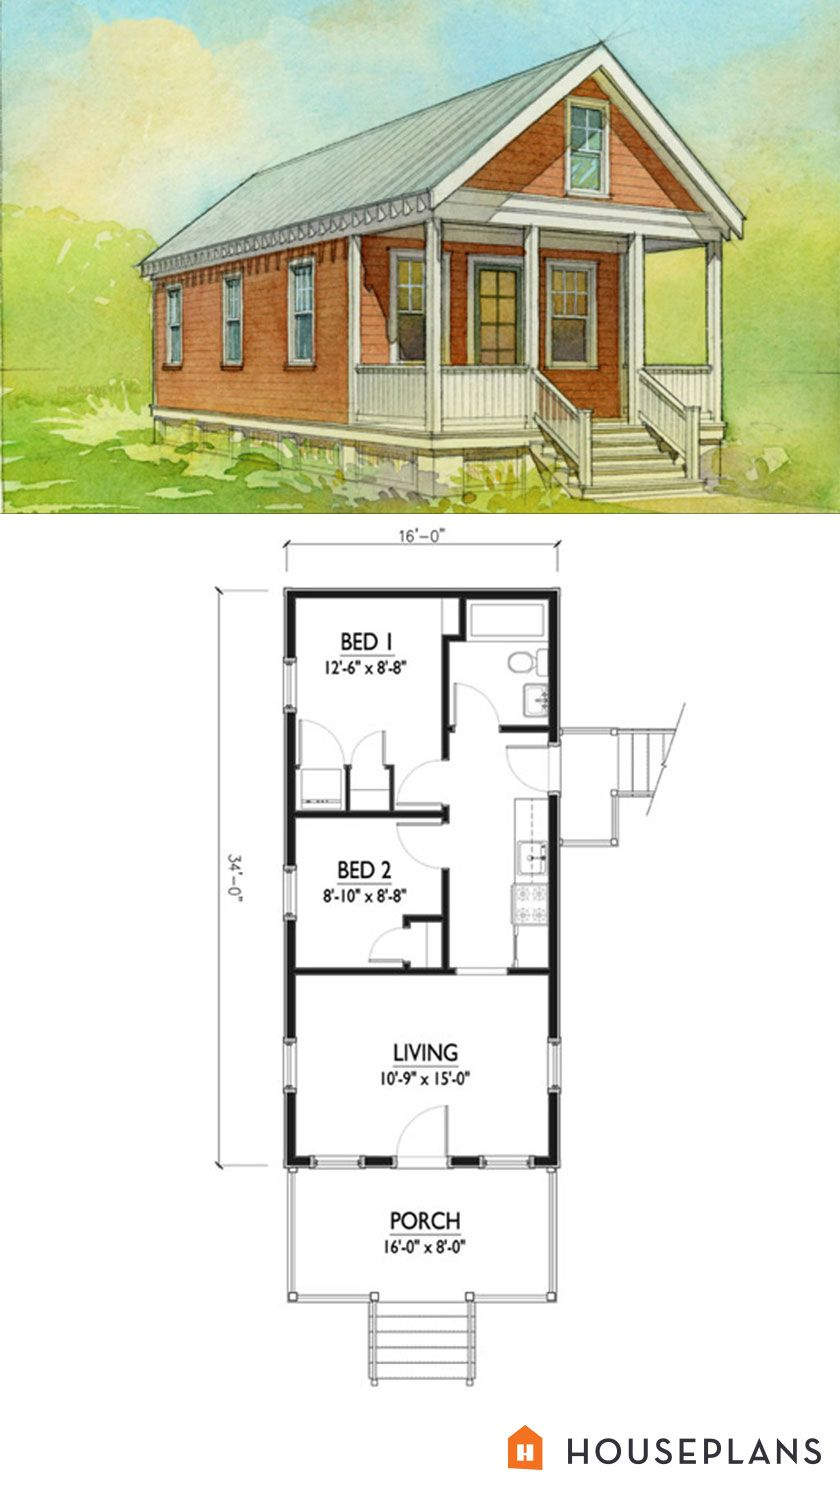 small katrina cottage house plan 500sft 2br 1 bath by marianne cusato houseplans plan - Katrina Cottage Plans